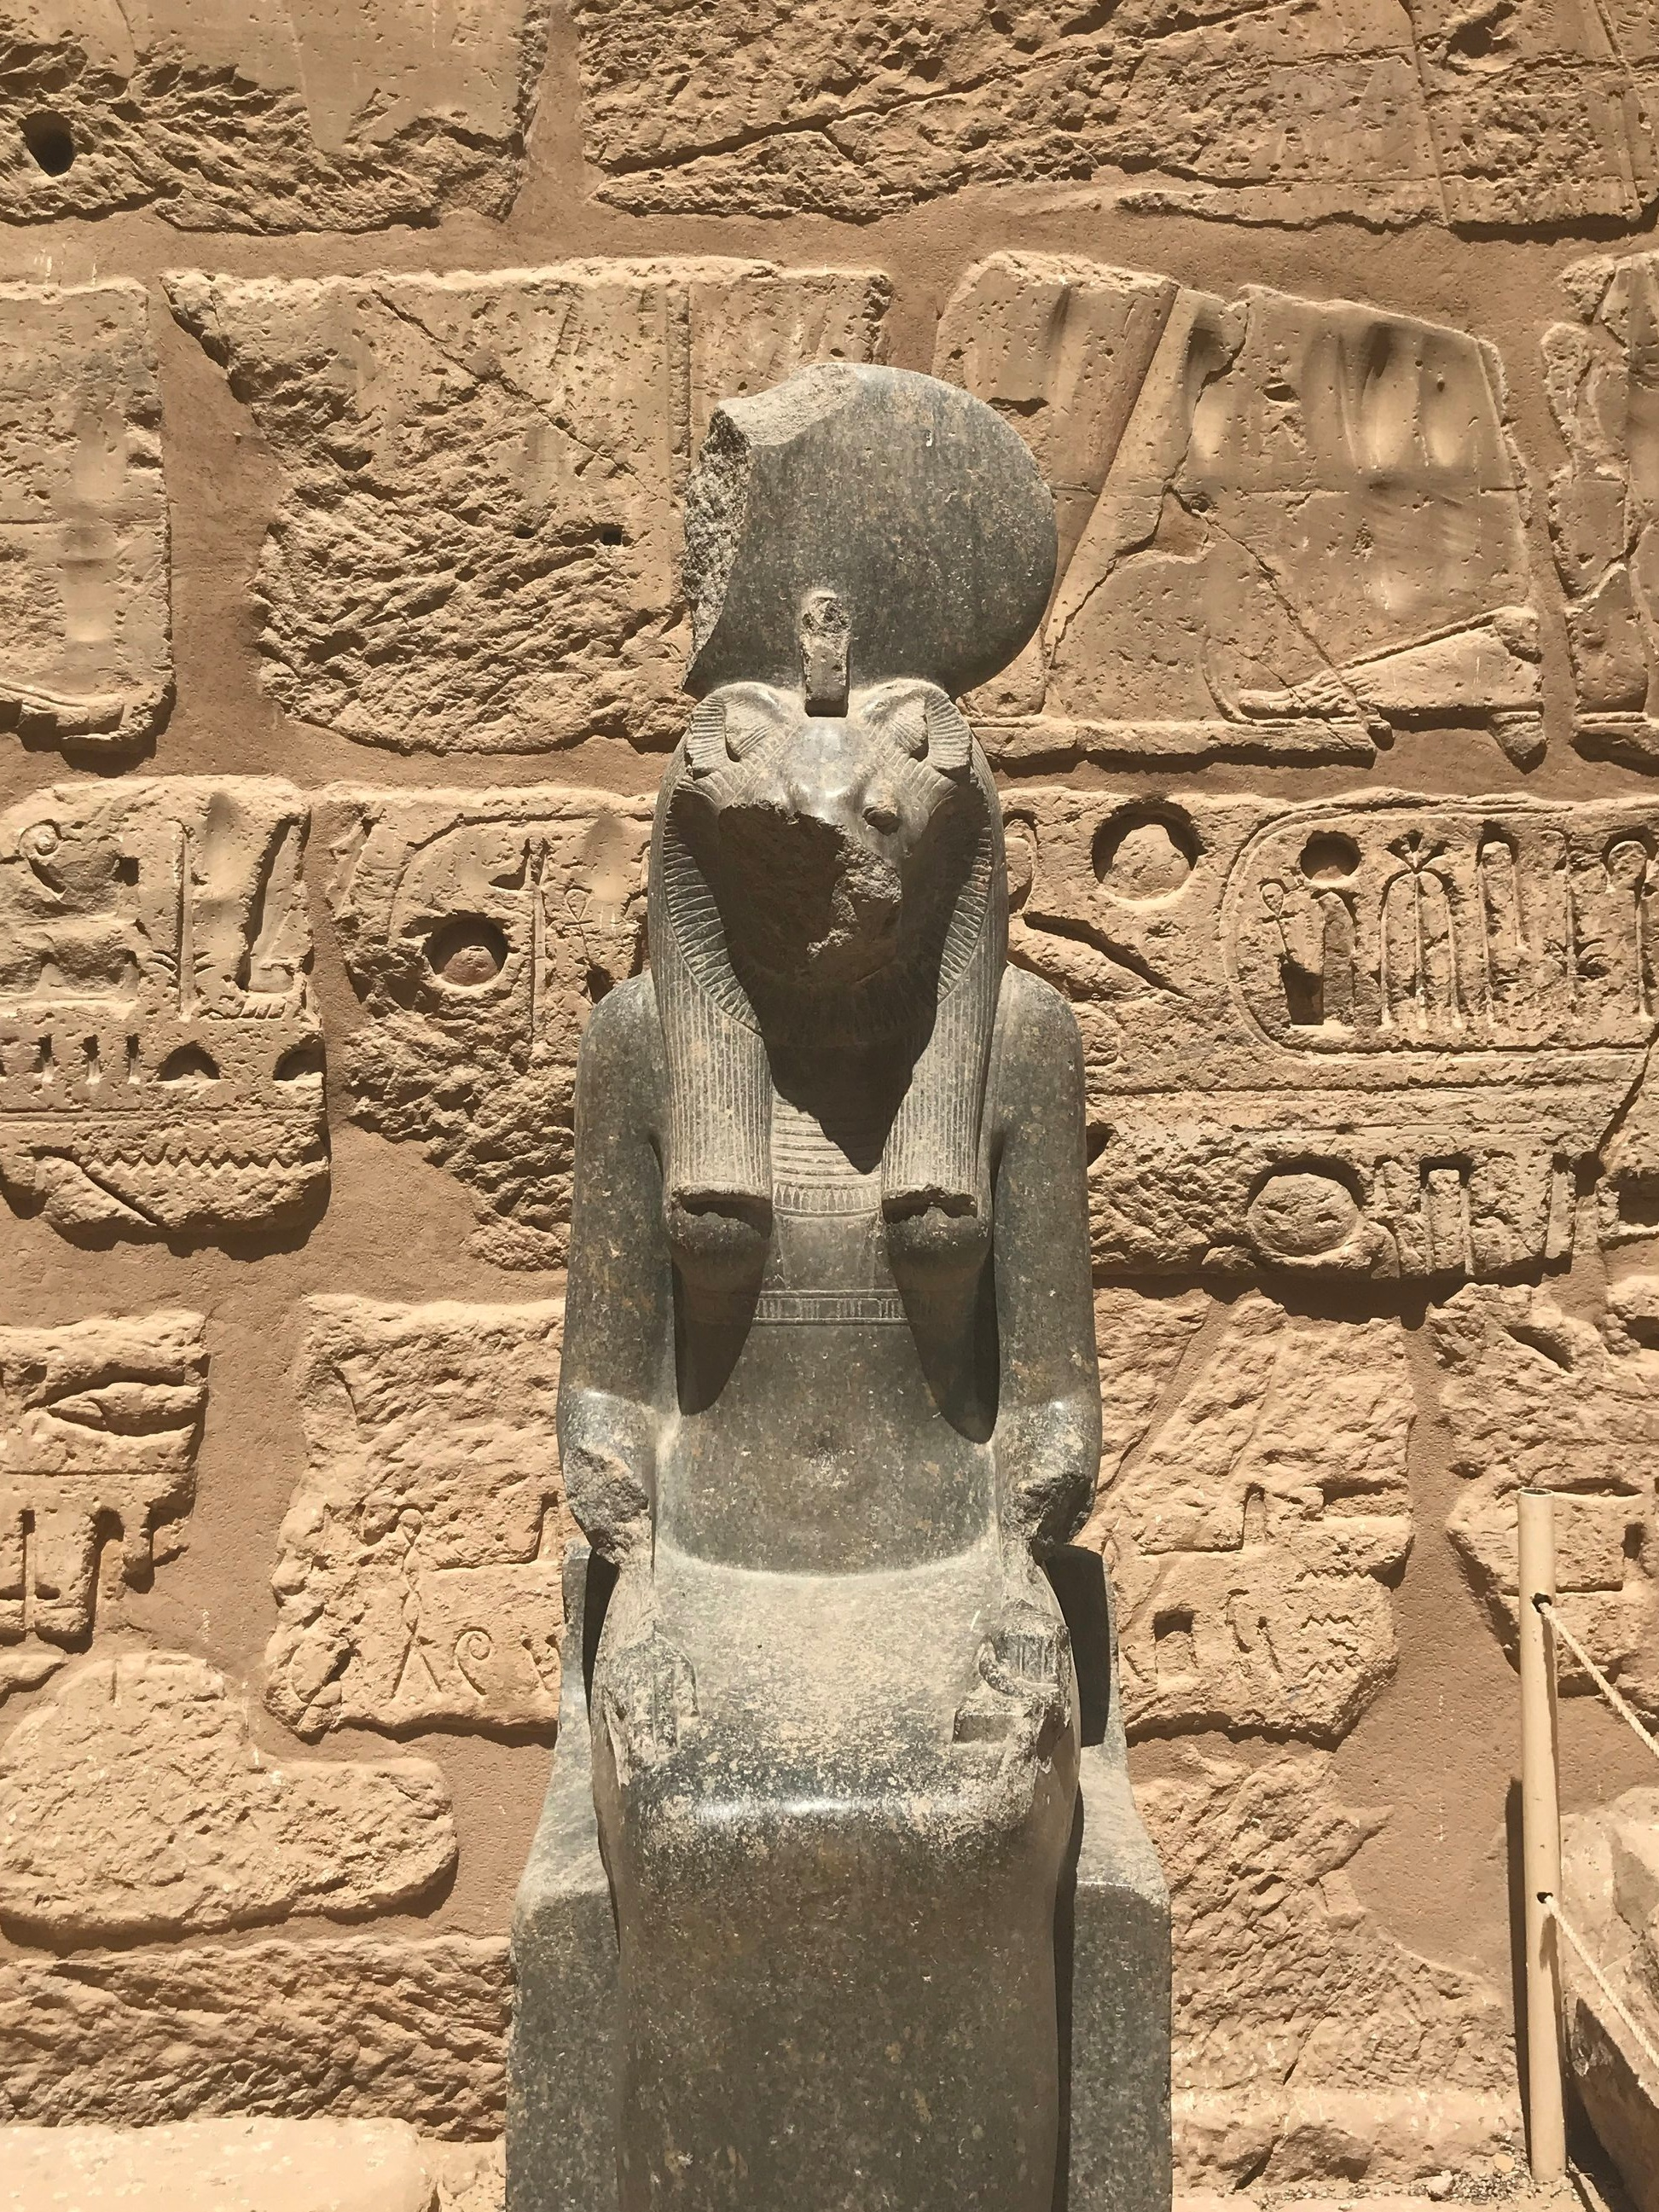 Upon entry, there are decaying statues of Sekhmet, the lioness-headed goddess of war